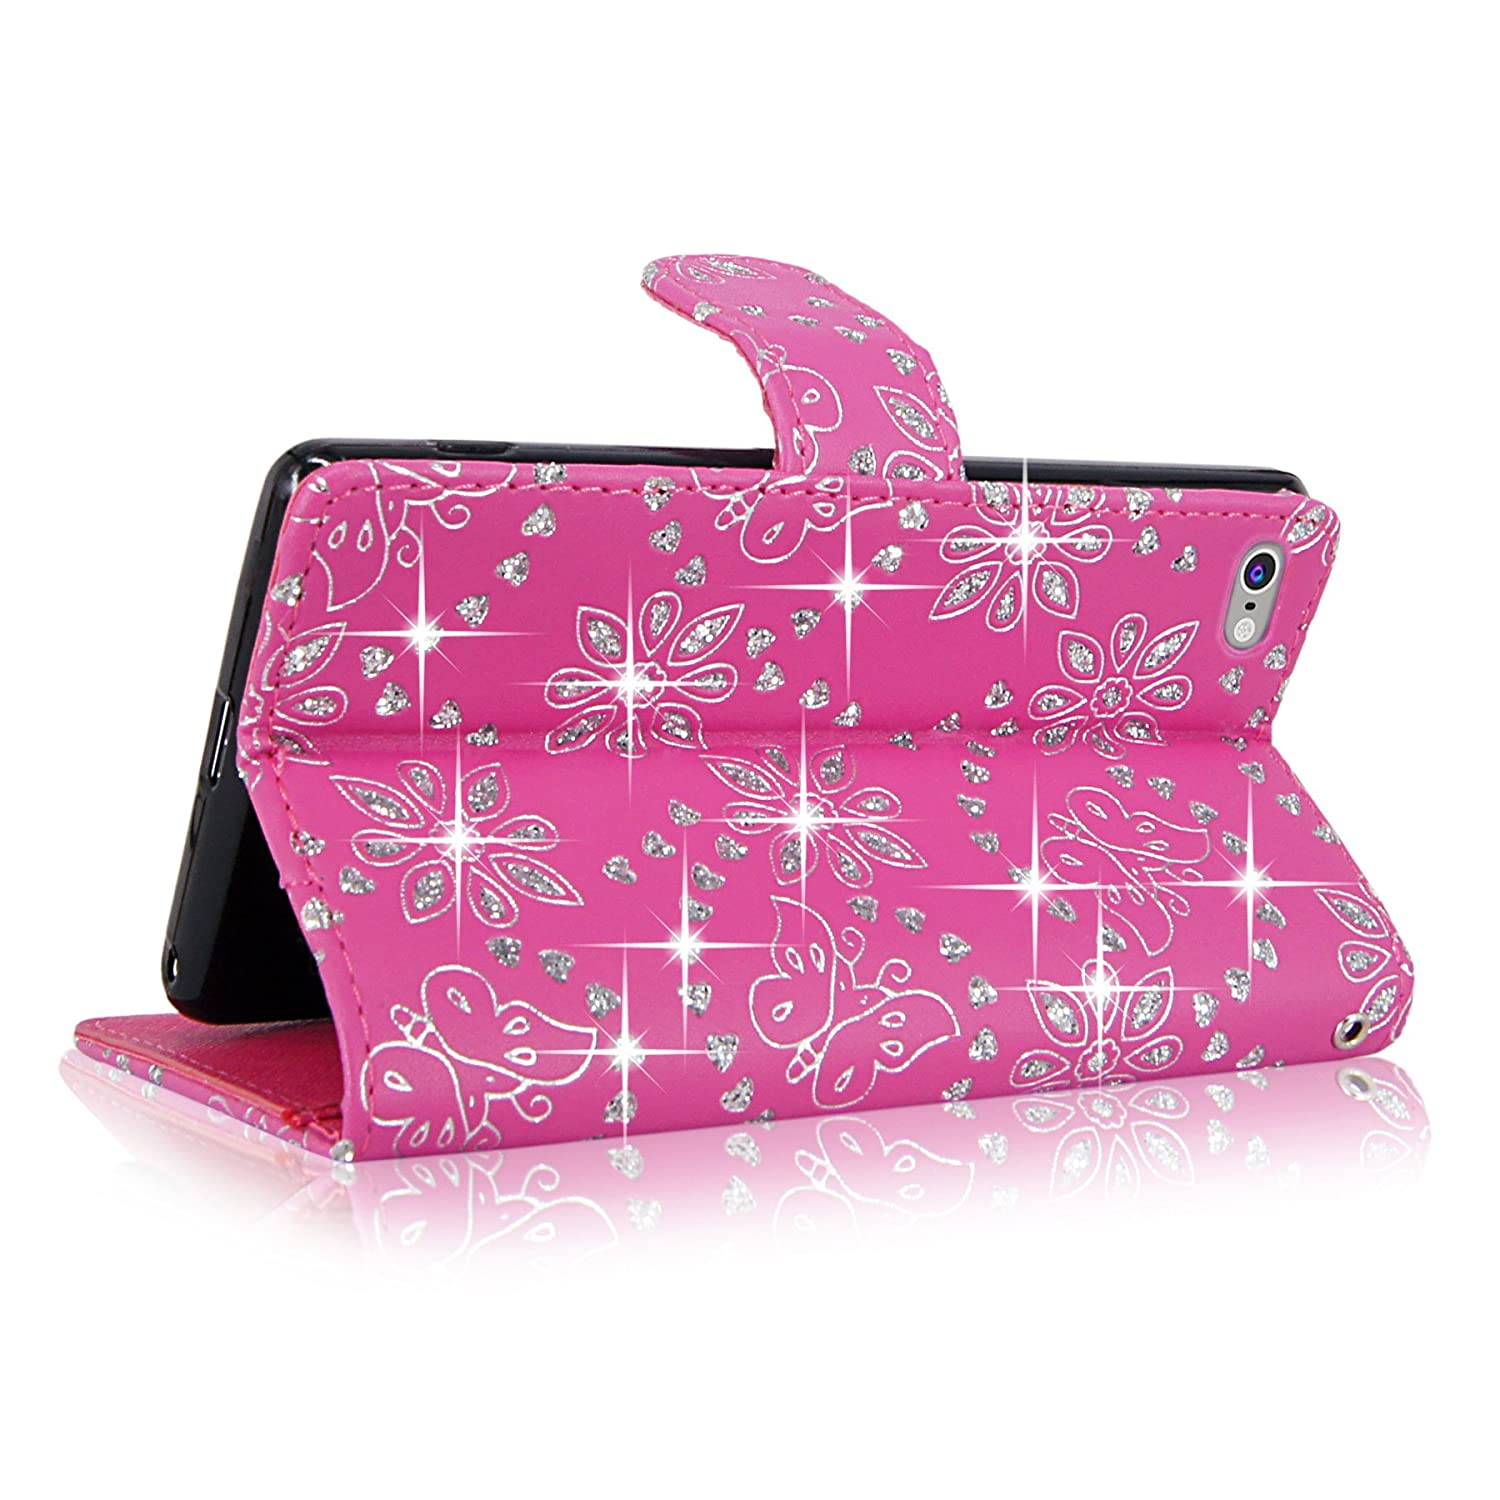 Cellularvilla Leather Pockets Detachable Glitter Image 2